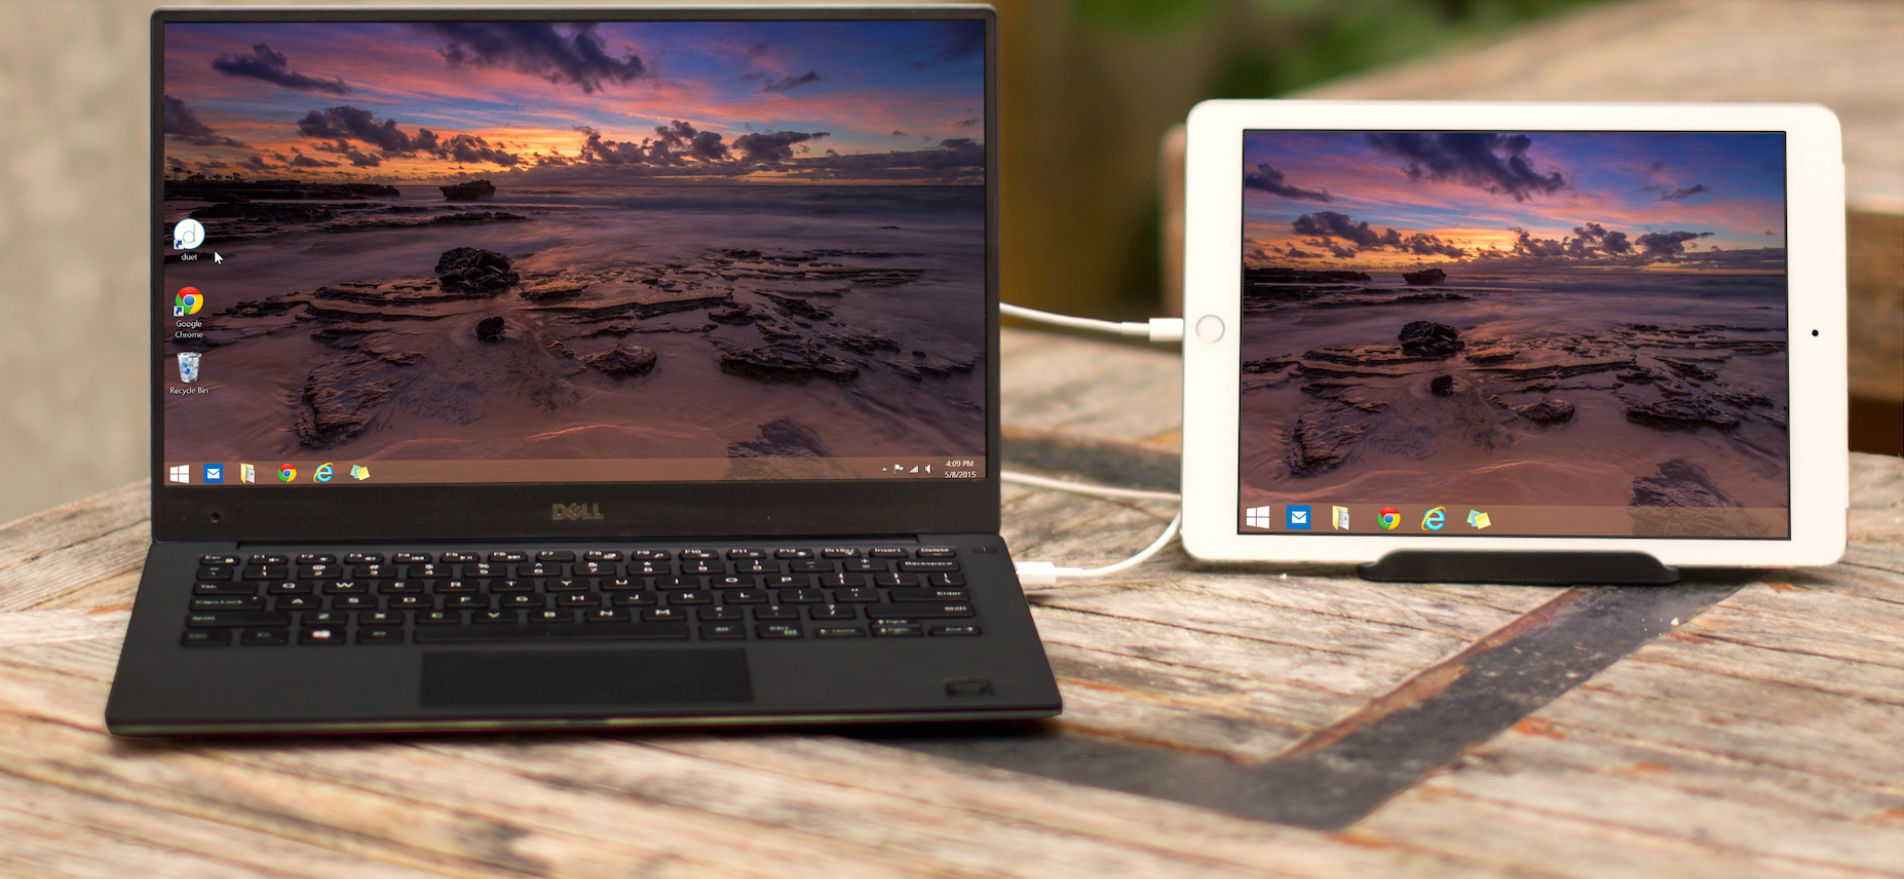 You can now use the updated Duet Display app as a second screen for your Windows 7 or 8 PC